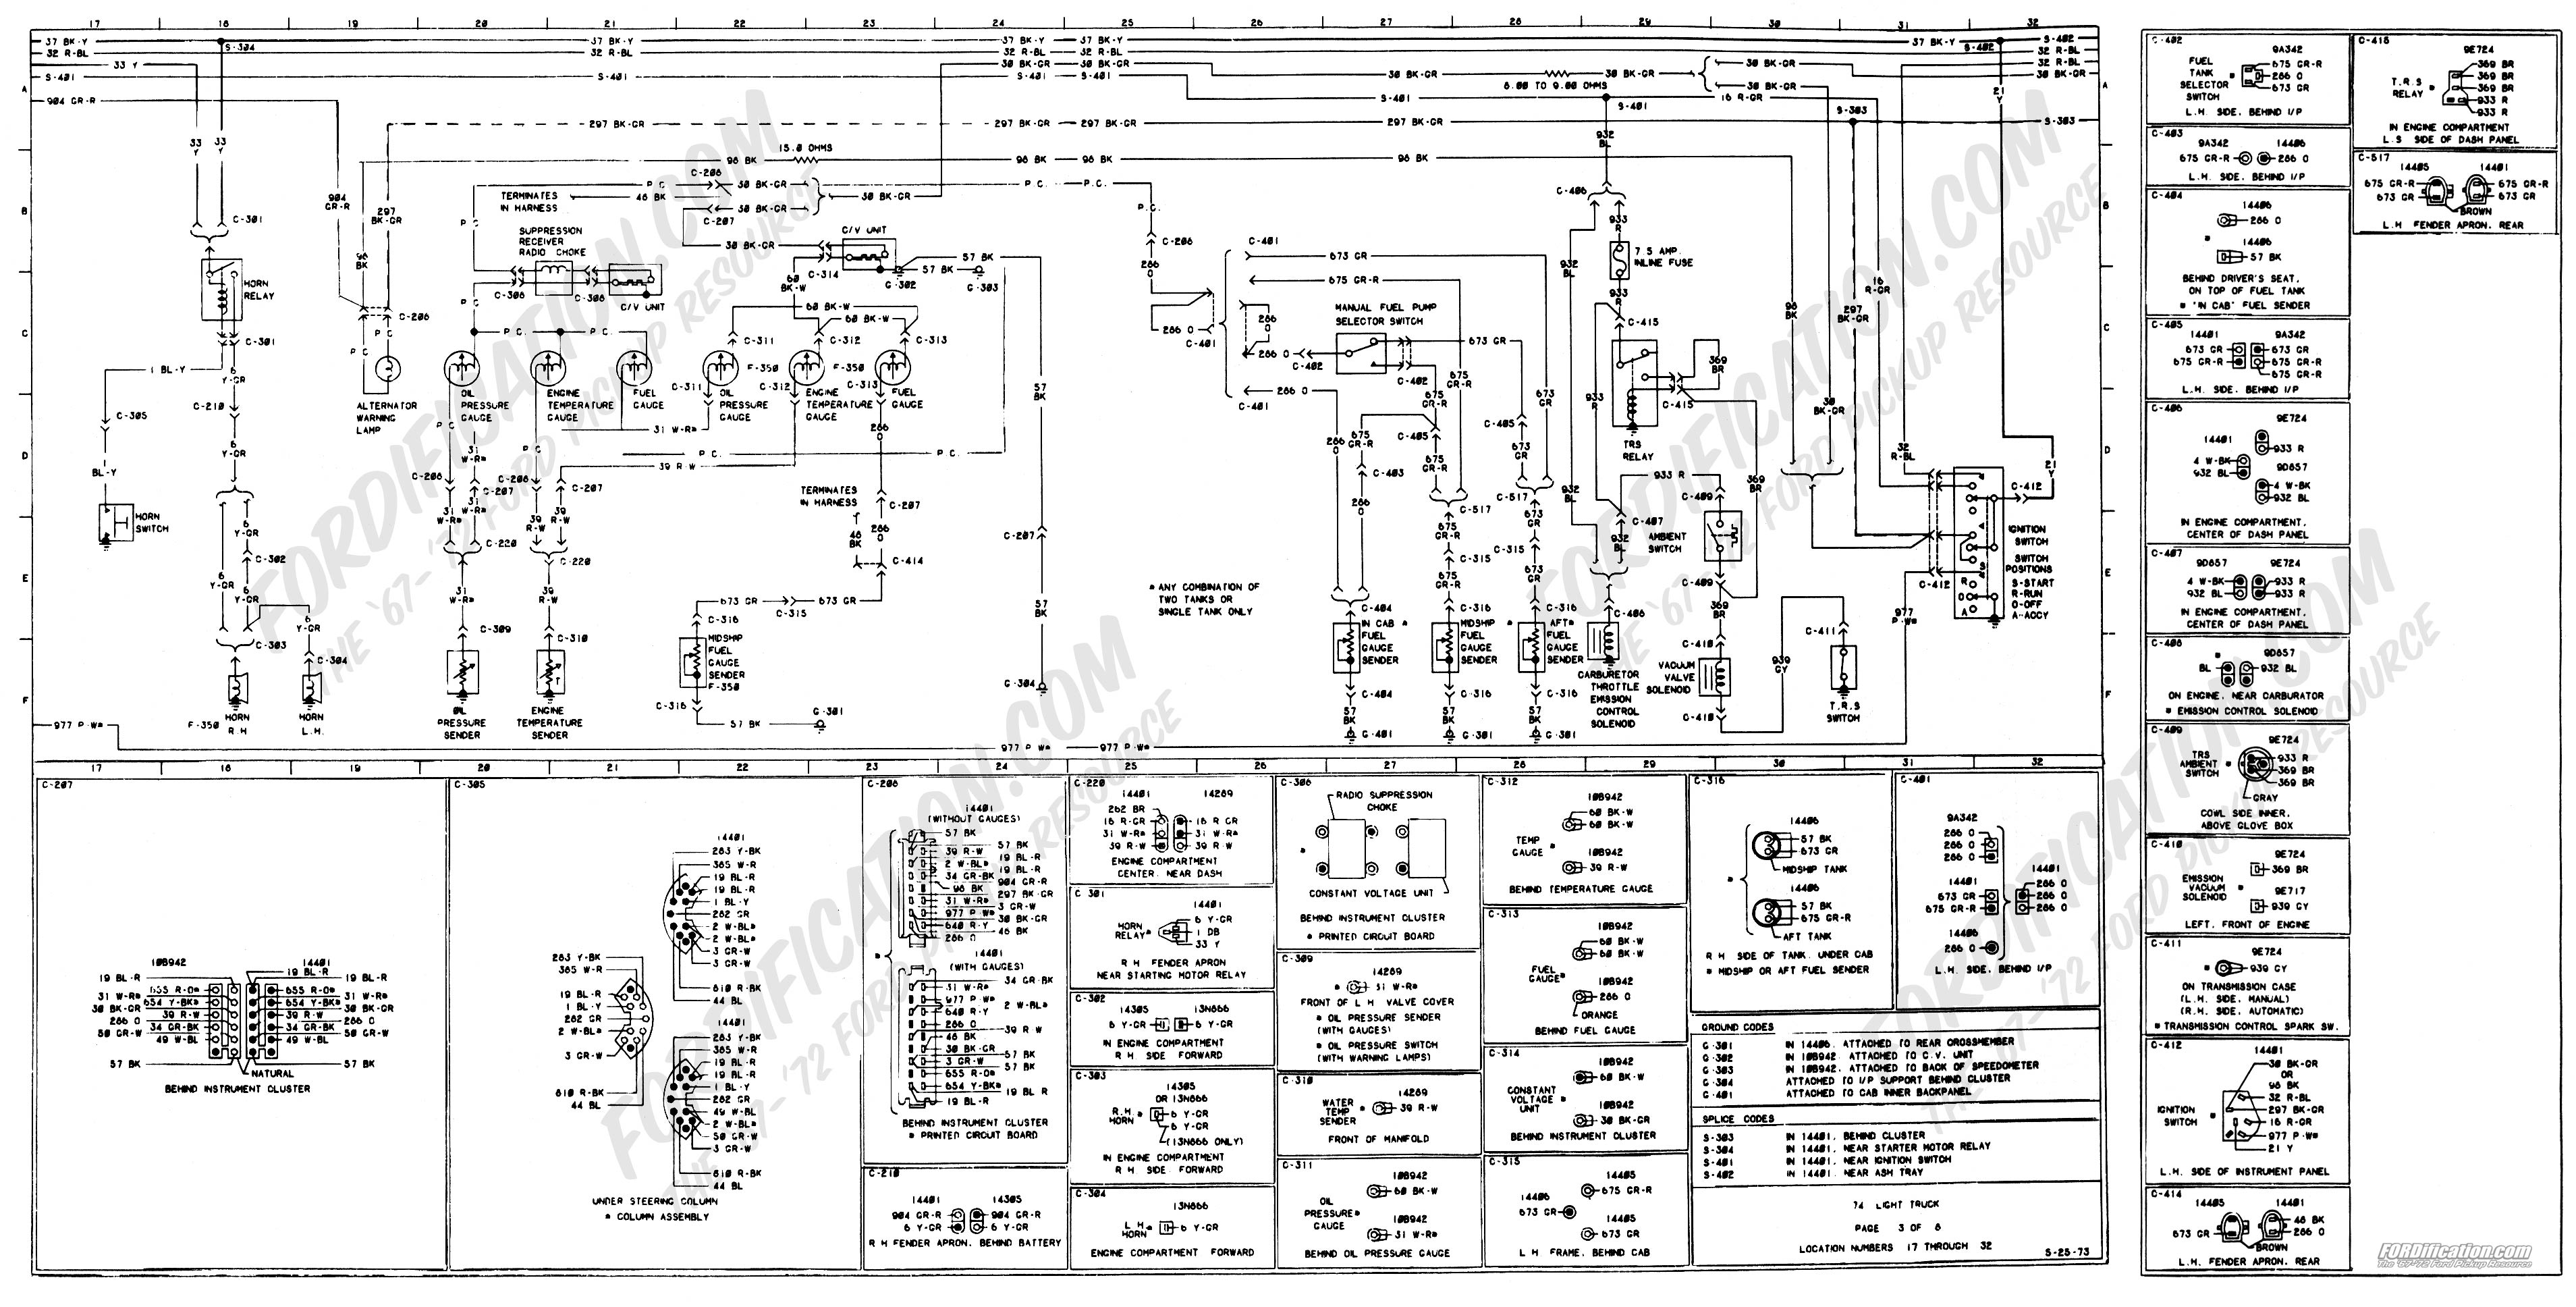 1973 1979 ford truck wiring diagrams schematics fordification net rh fordification net 79 ford truck wiring harness 73-79 ford truck wiring harness